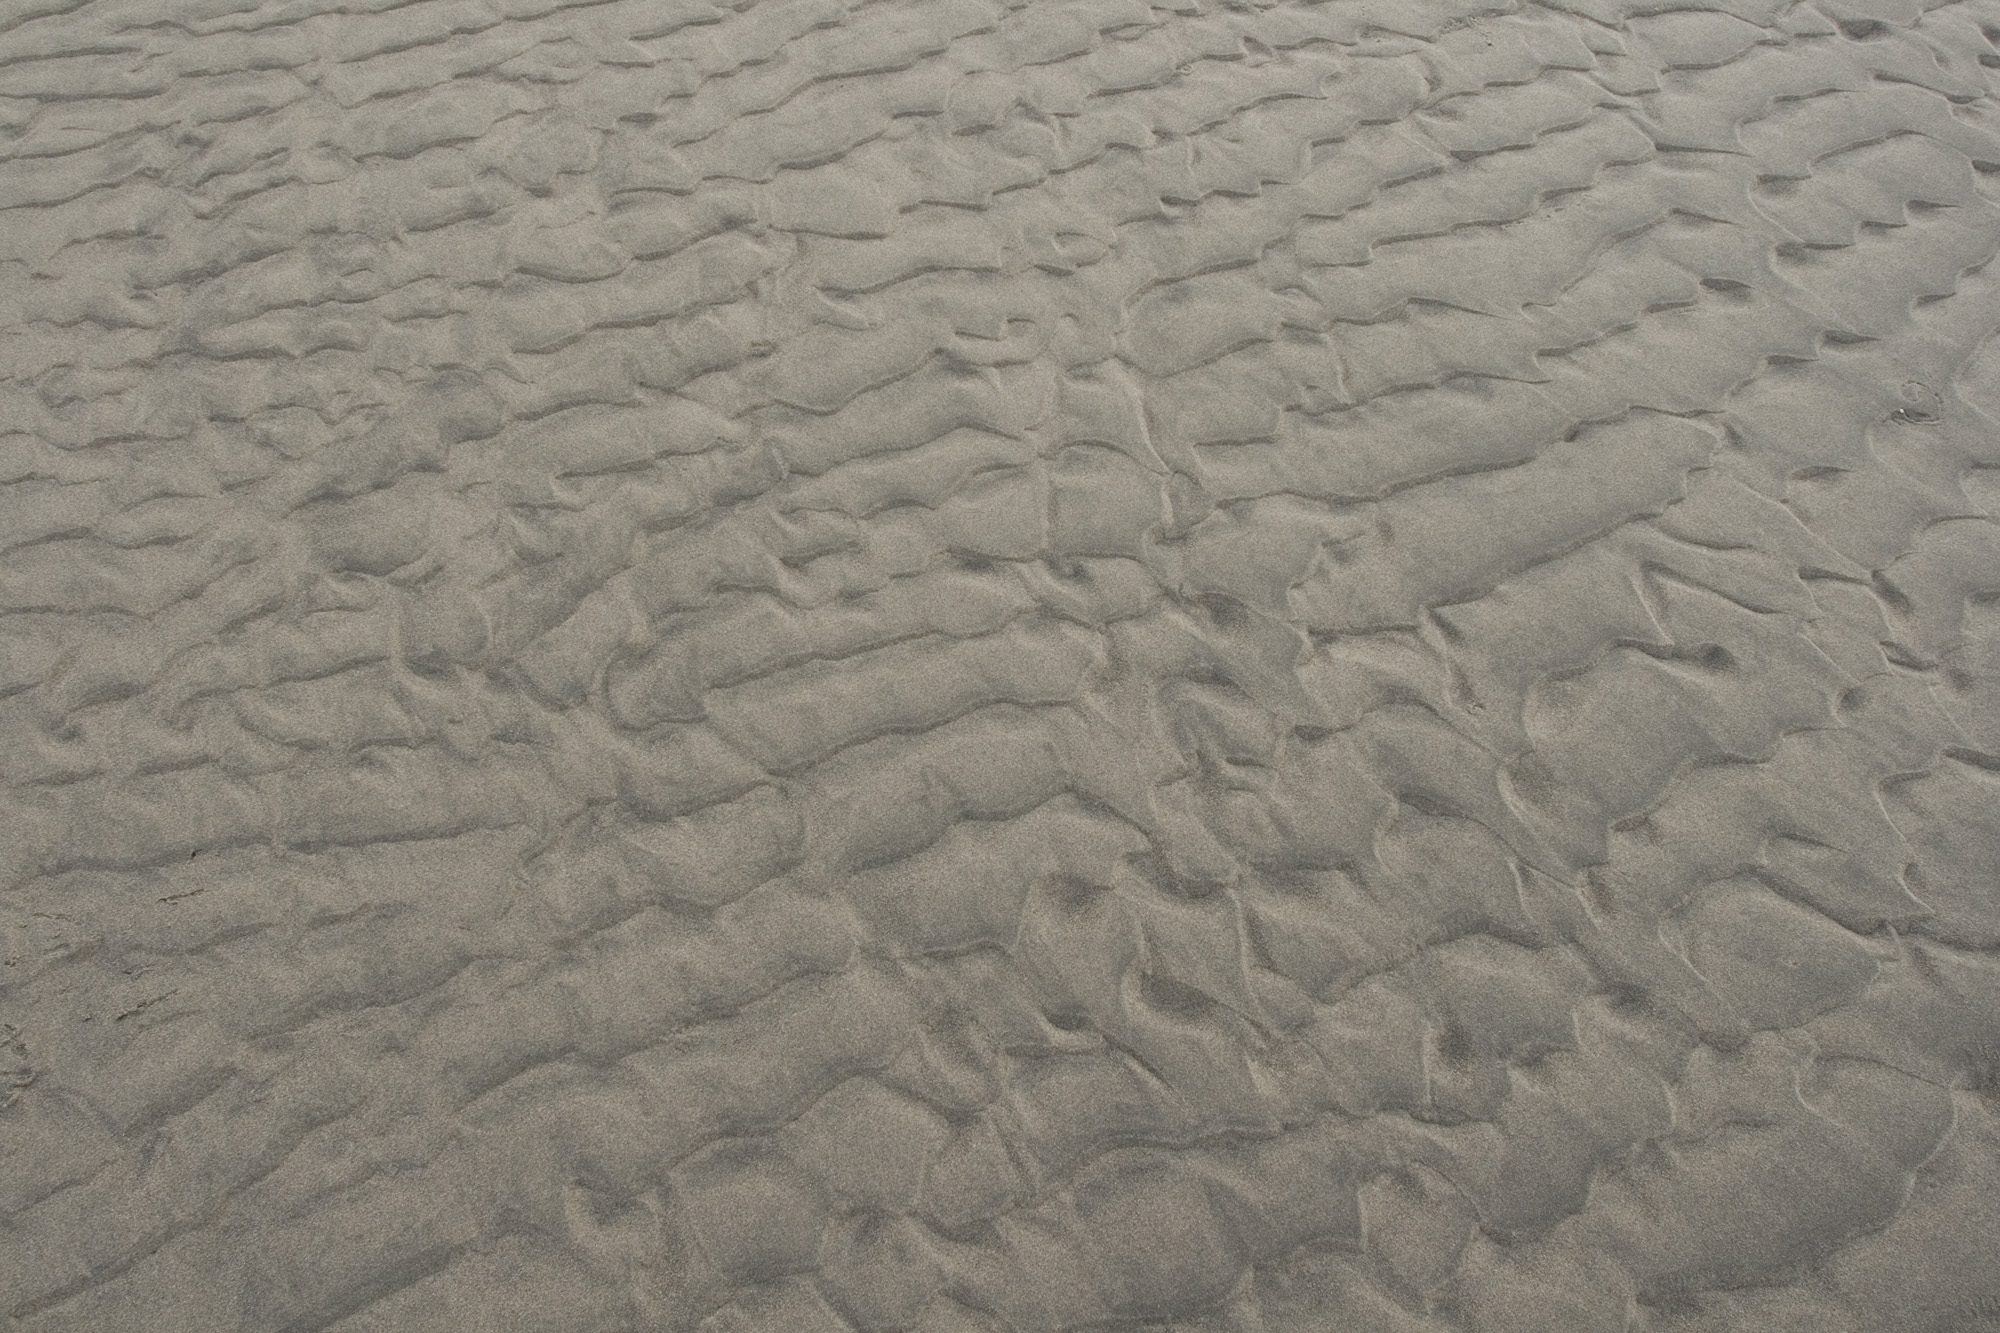 Cape Disappointment beach sand texture